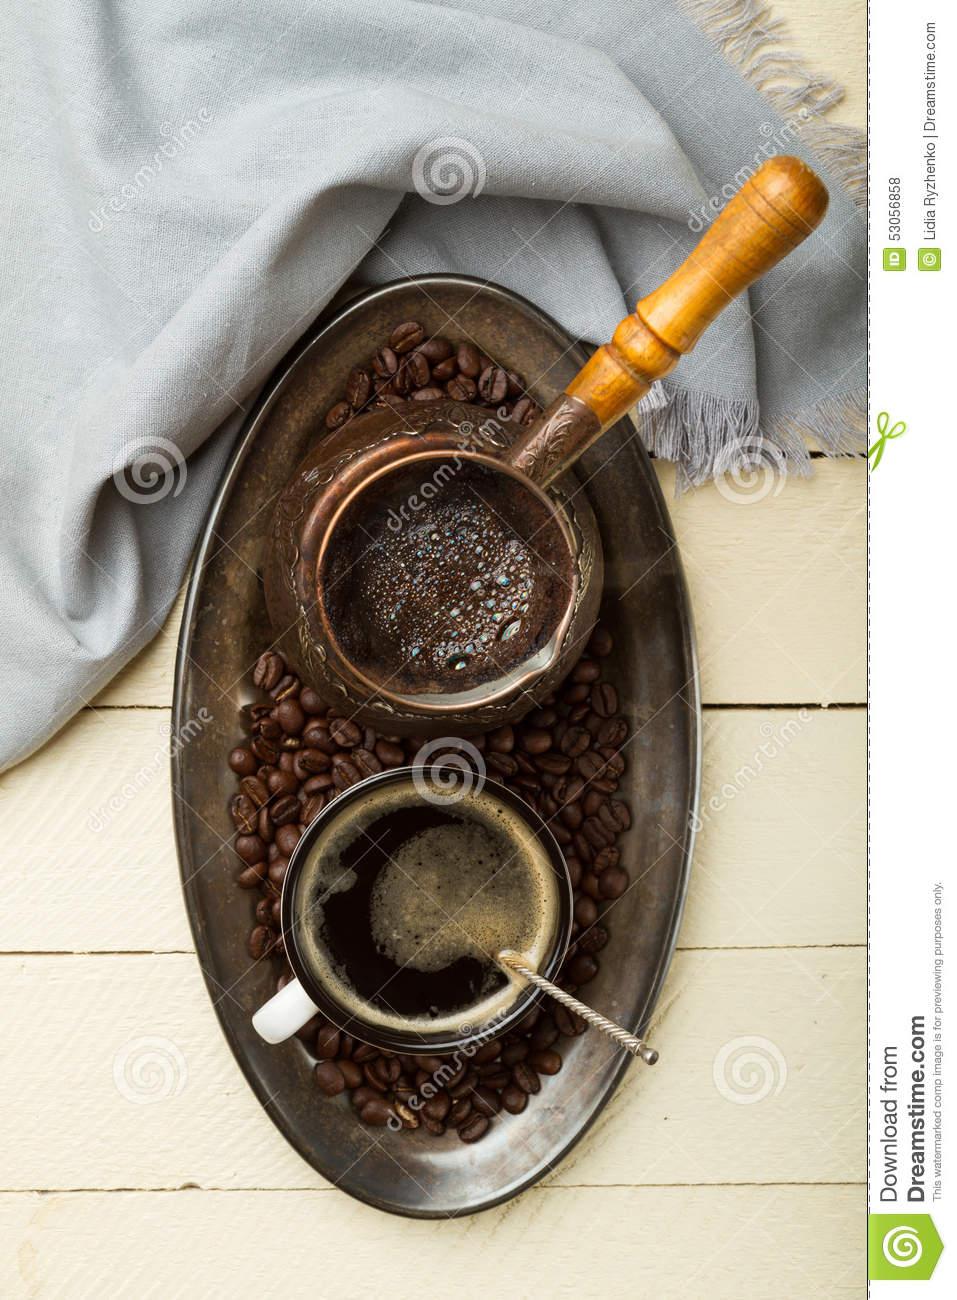 Tray of freshly made coffee